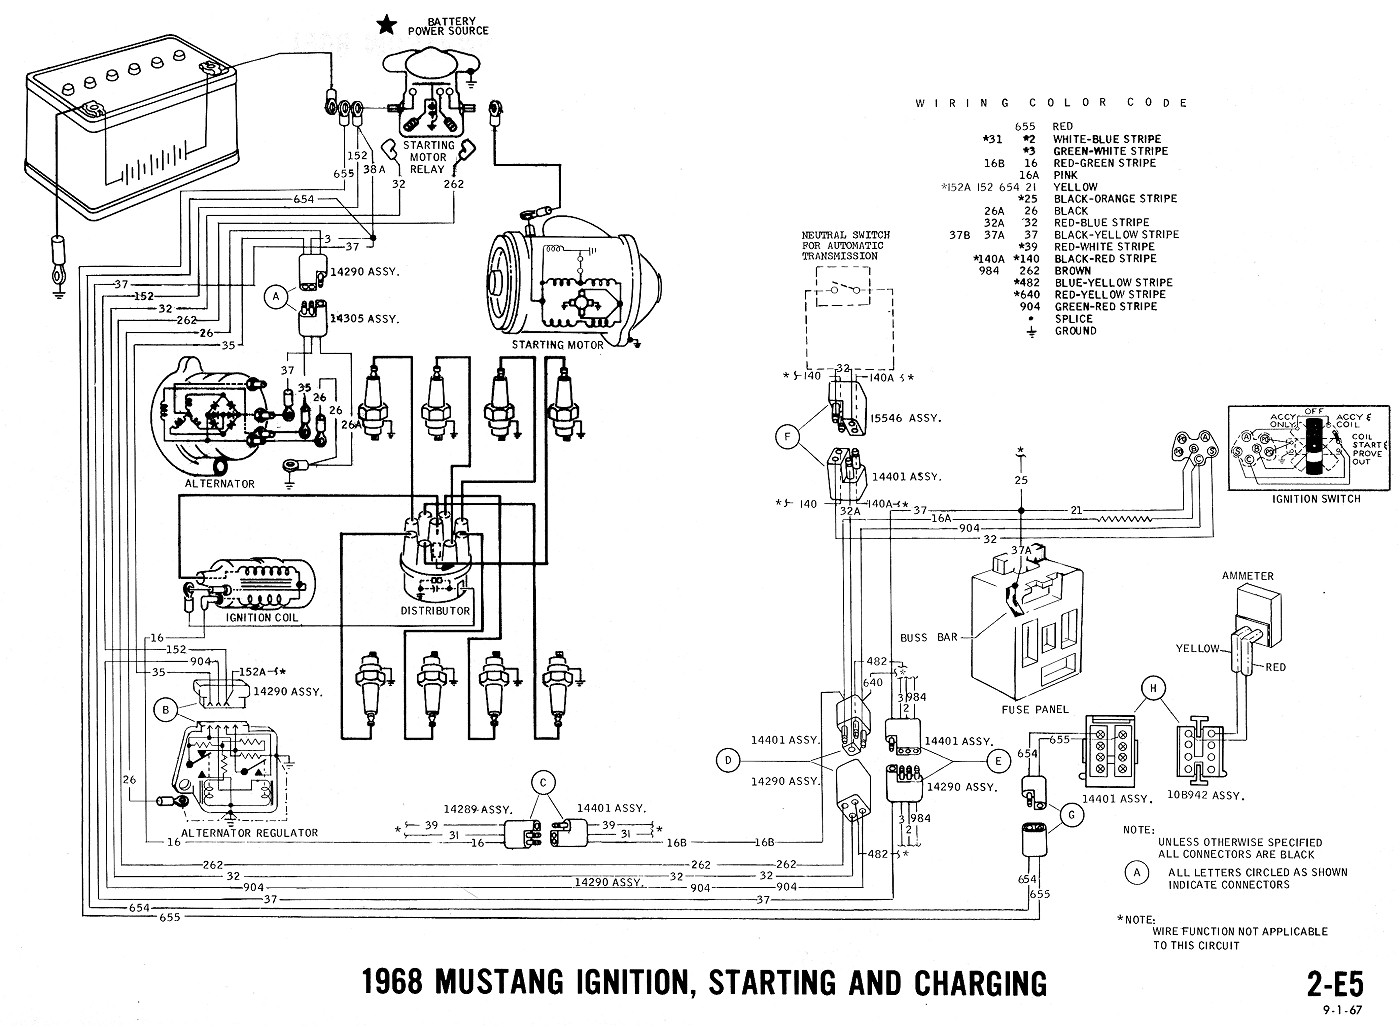 1968 Mustang Wiring Diagram For Light -1993 Ezgo Marathon Wiring Diagram 36  Volt | Begeboy Wiring Diagram Source